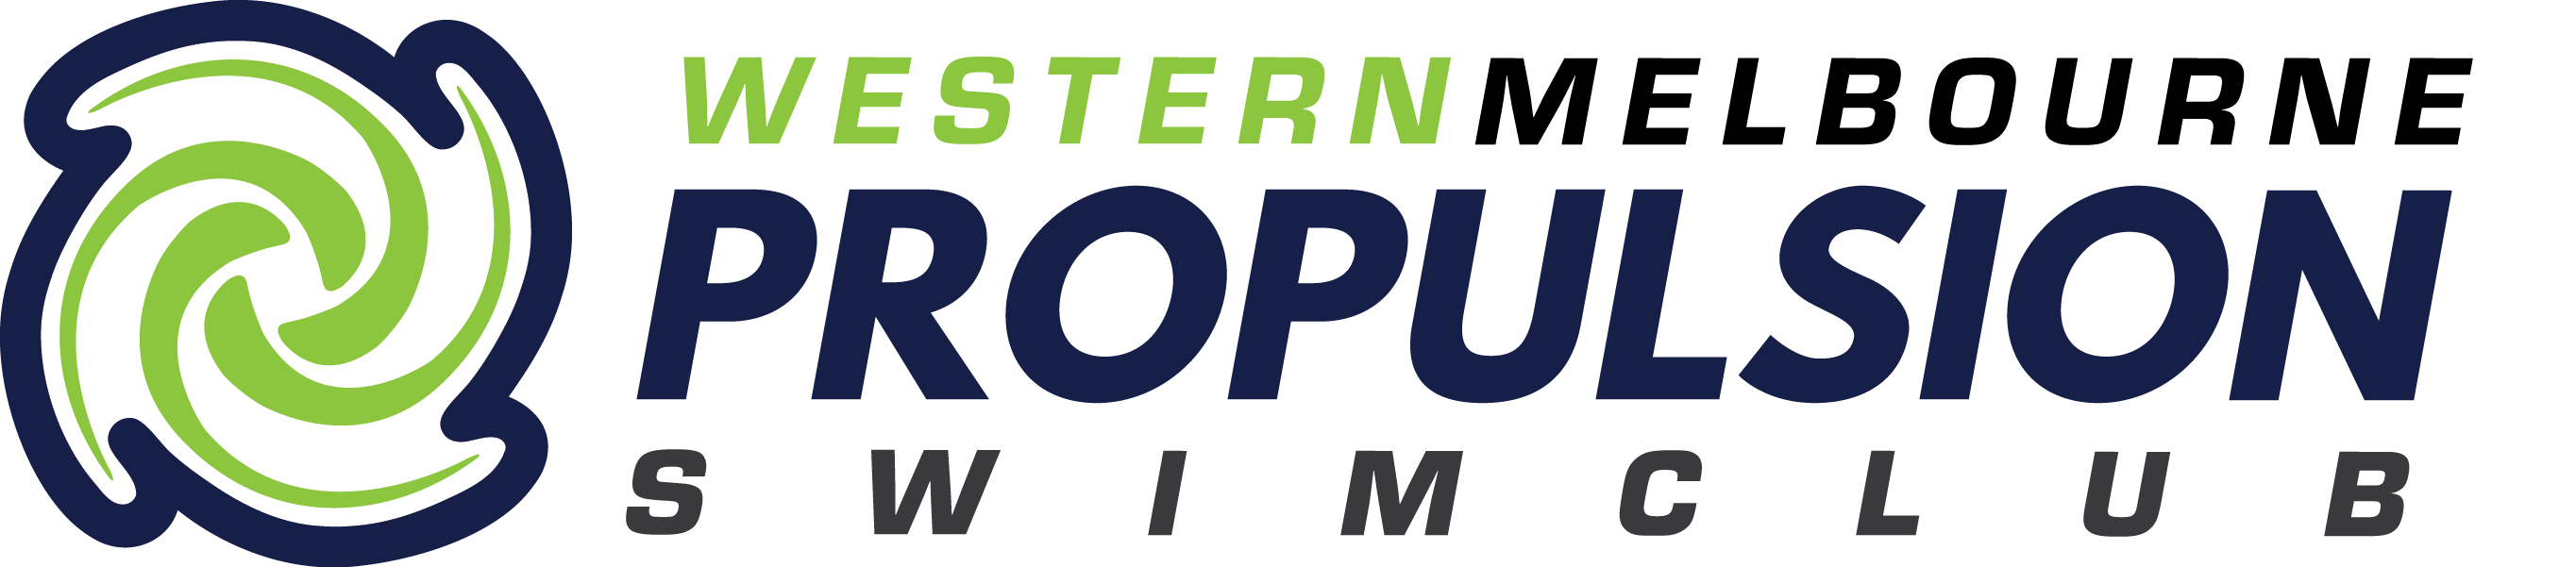 Western Melbourne Propulsion Swimming Club logo